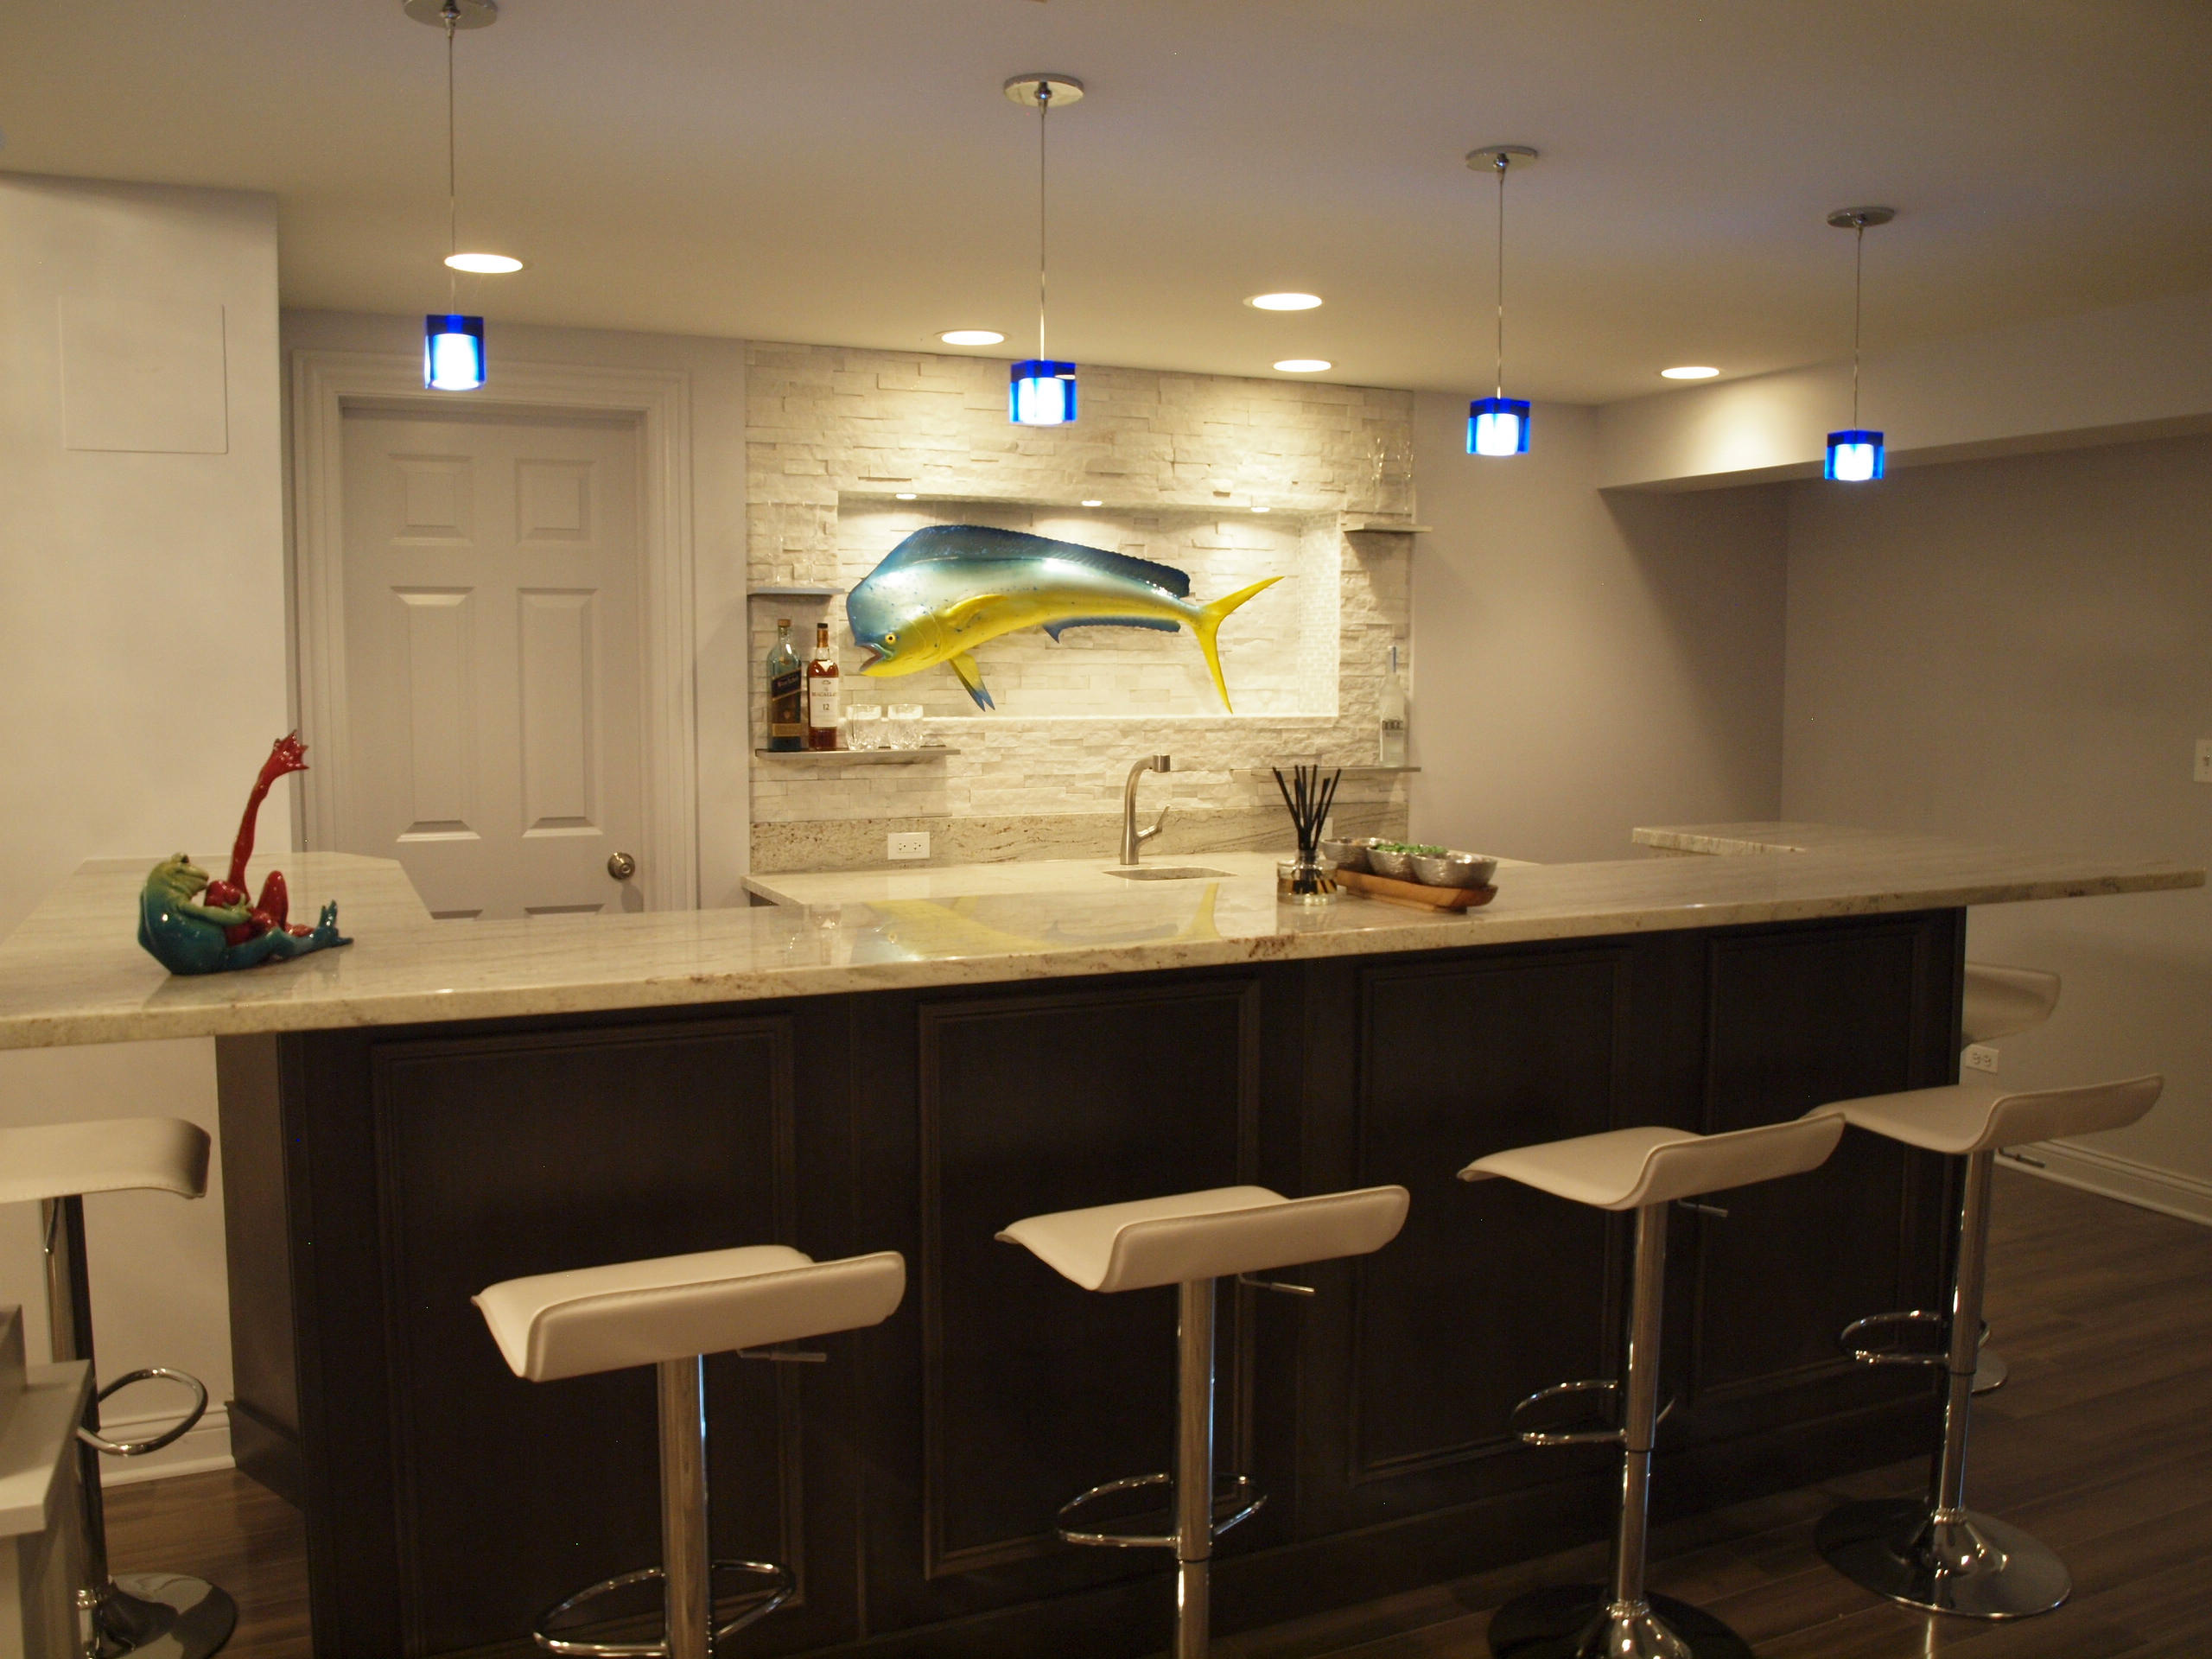 Modern basement bar ideas 14 decor ideas - Stylish home bar ideas ...